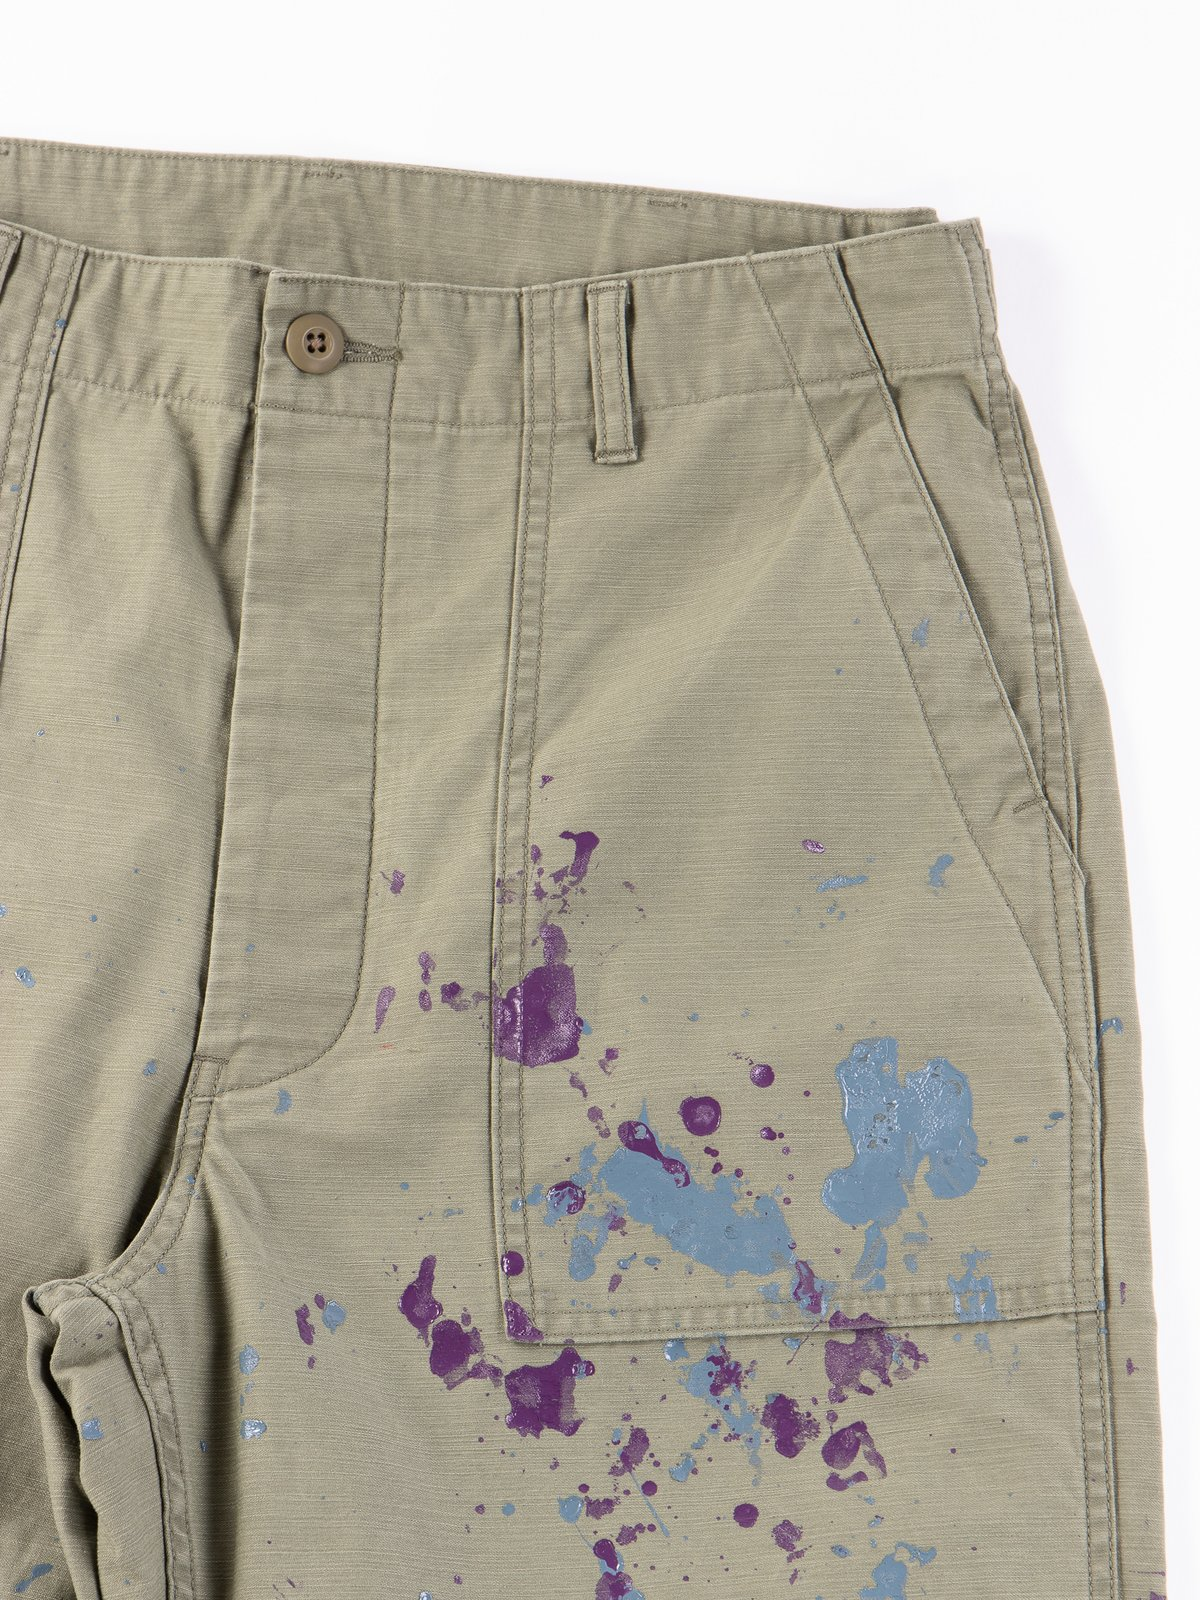 Olive Paint Sateen Fatigue Pant - Image 2